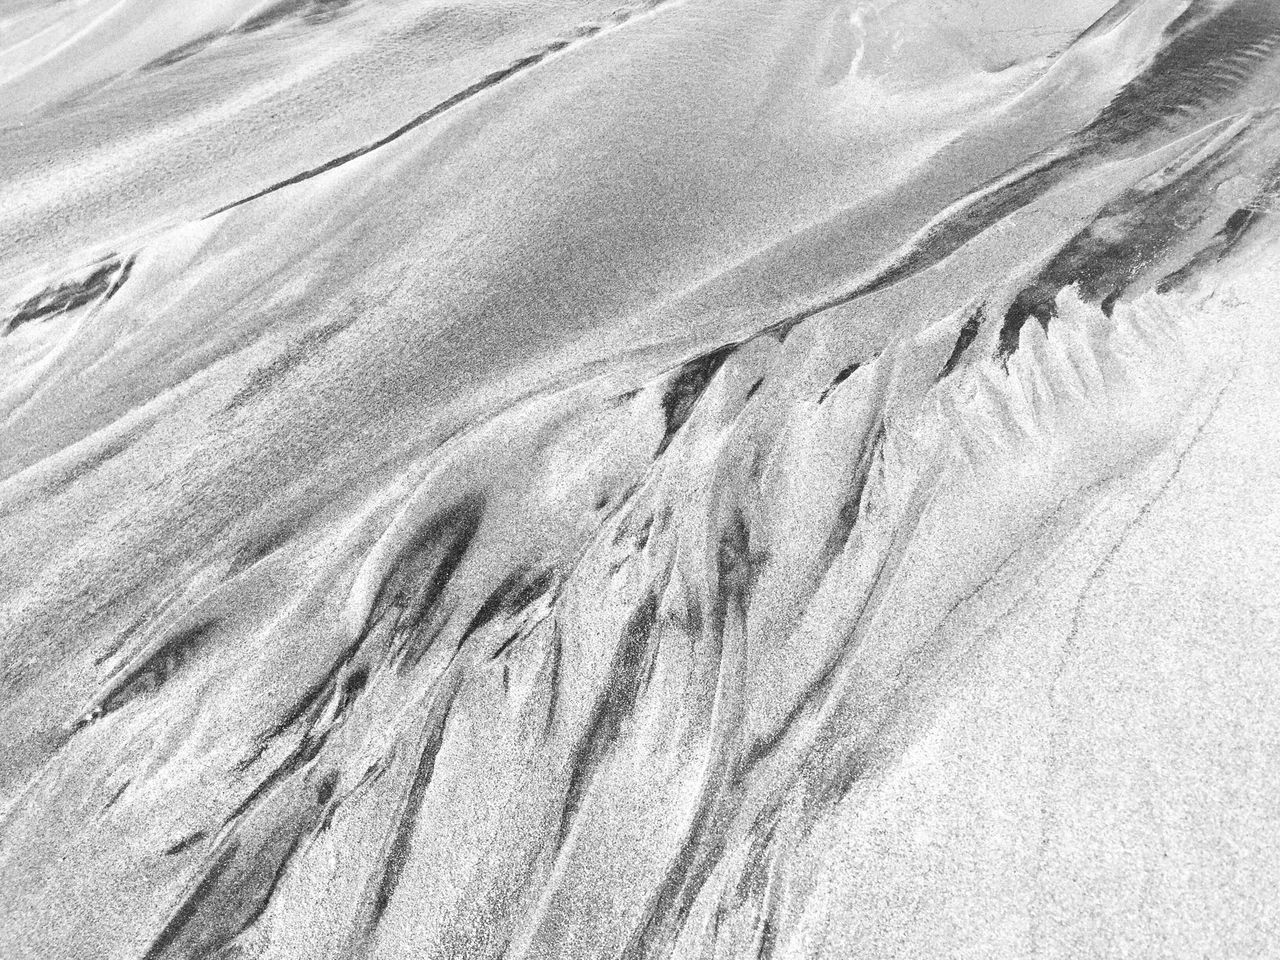 Pattern in the sand Seascape Beach Beach Life Beachphotography Beach Photography Monochromatic Oceanside Blackandwhite Photography Black&white Black And White Black & White Beachlife Seaside Composition Blackandwhite Contemplating Perspective Sand Sand & Sea Sand Dune Sand Pattern Sand Patterns Sand Dunes Micro To Macro Grains Of Sand